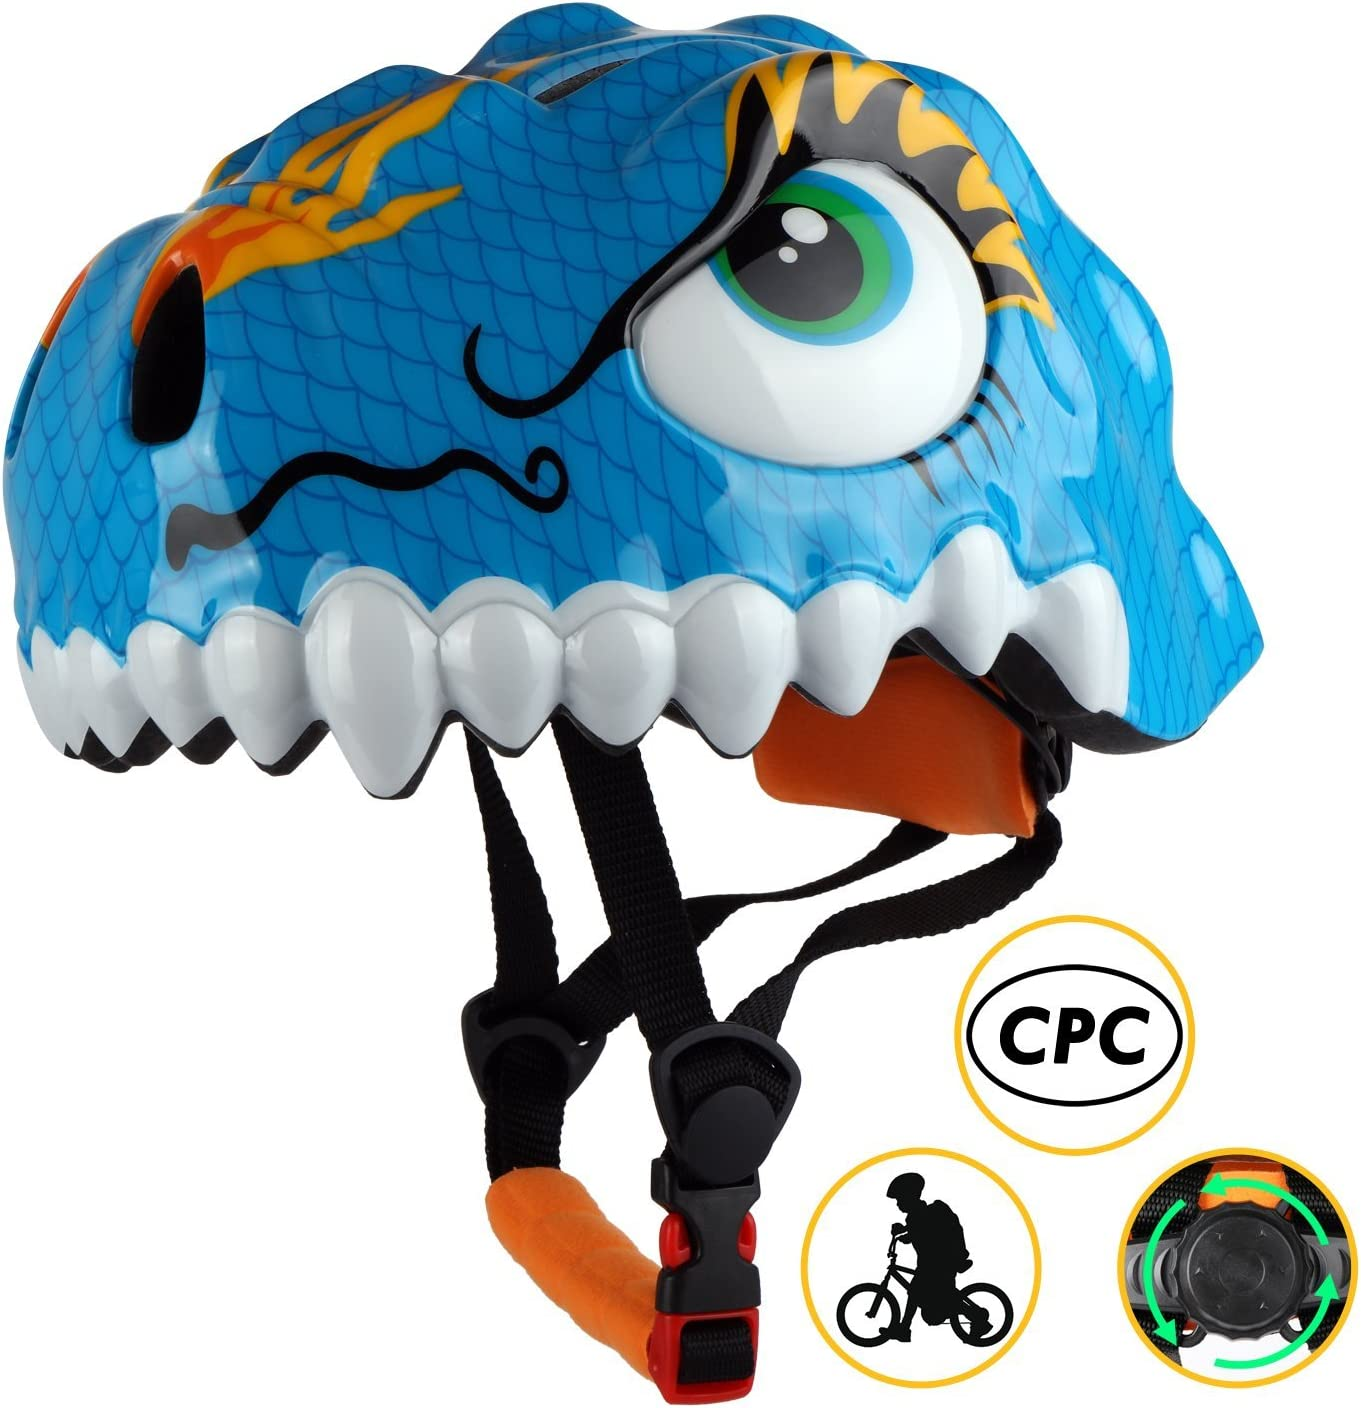 Shinmax Kids Bike Helmet, 3D Cartoon Toddler Helmet CPC CE Certified Children Multi-Sport Infant Safety Helmet Adjustable for Boys Girls Riding Cycling Skating Scooter